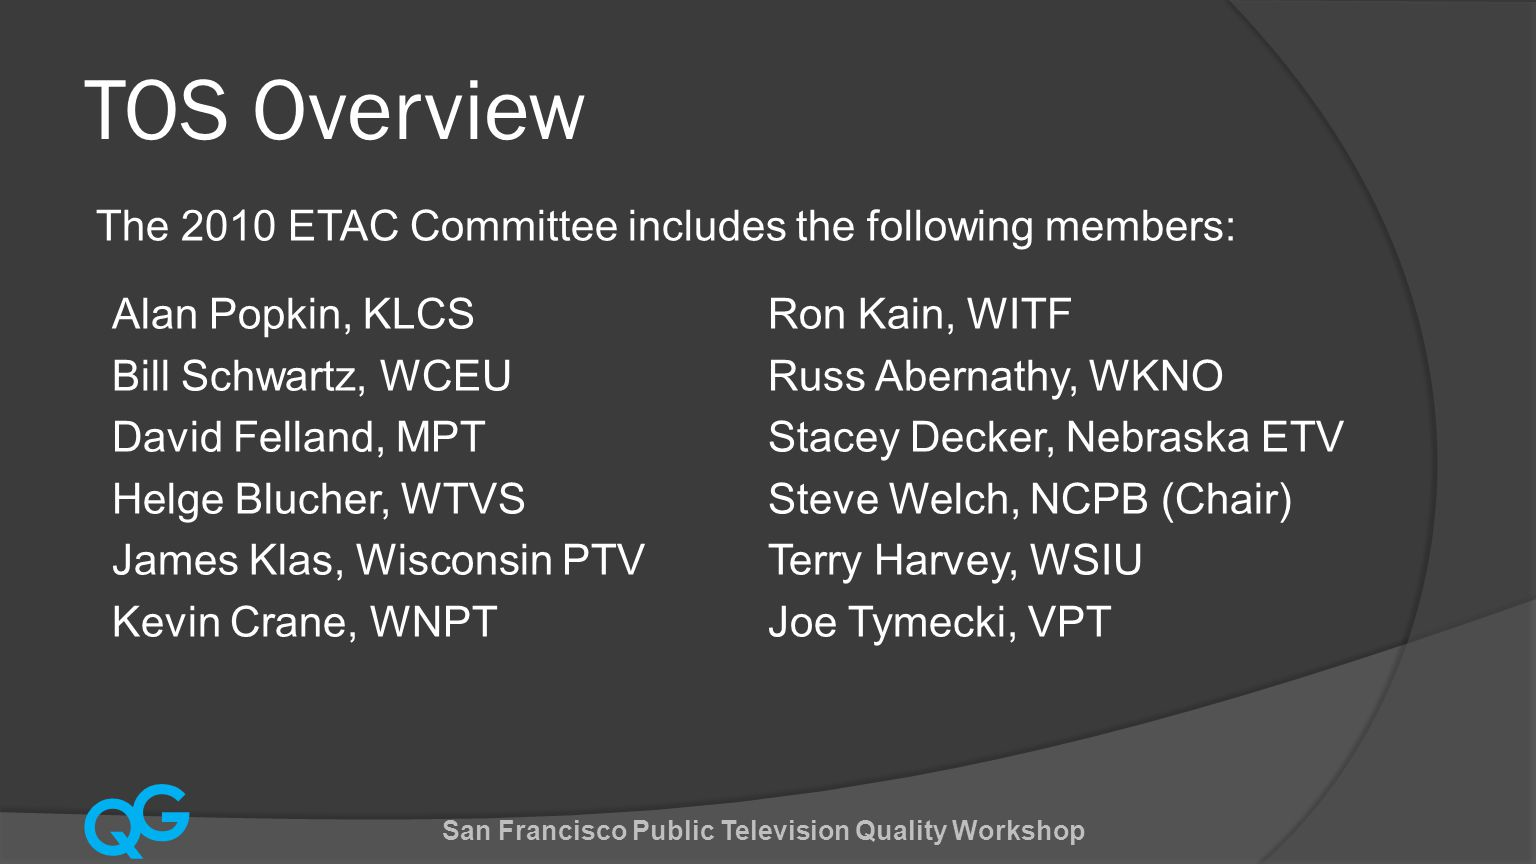 Q G TOS Overview The 2010 ETAC Committee includes the following members: San Francisco Public Television Quality Workshop Alan Popkin, KLCS Bill Schwartz, WCEU David Felland, MPT Helge Blucher, WTVS James Klas, Wisconsin PTV Kevin Crane, WNPT Ron Kain, WITF Russ Abernathy, WKNO Stacey Decker, Nebraska ETV Steve Welch, NCPB (Chair) Terry Harvey, WSIU Joe Tymecki, VPT